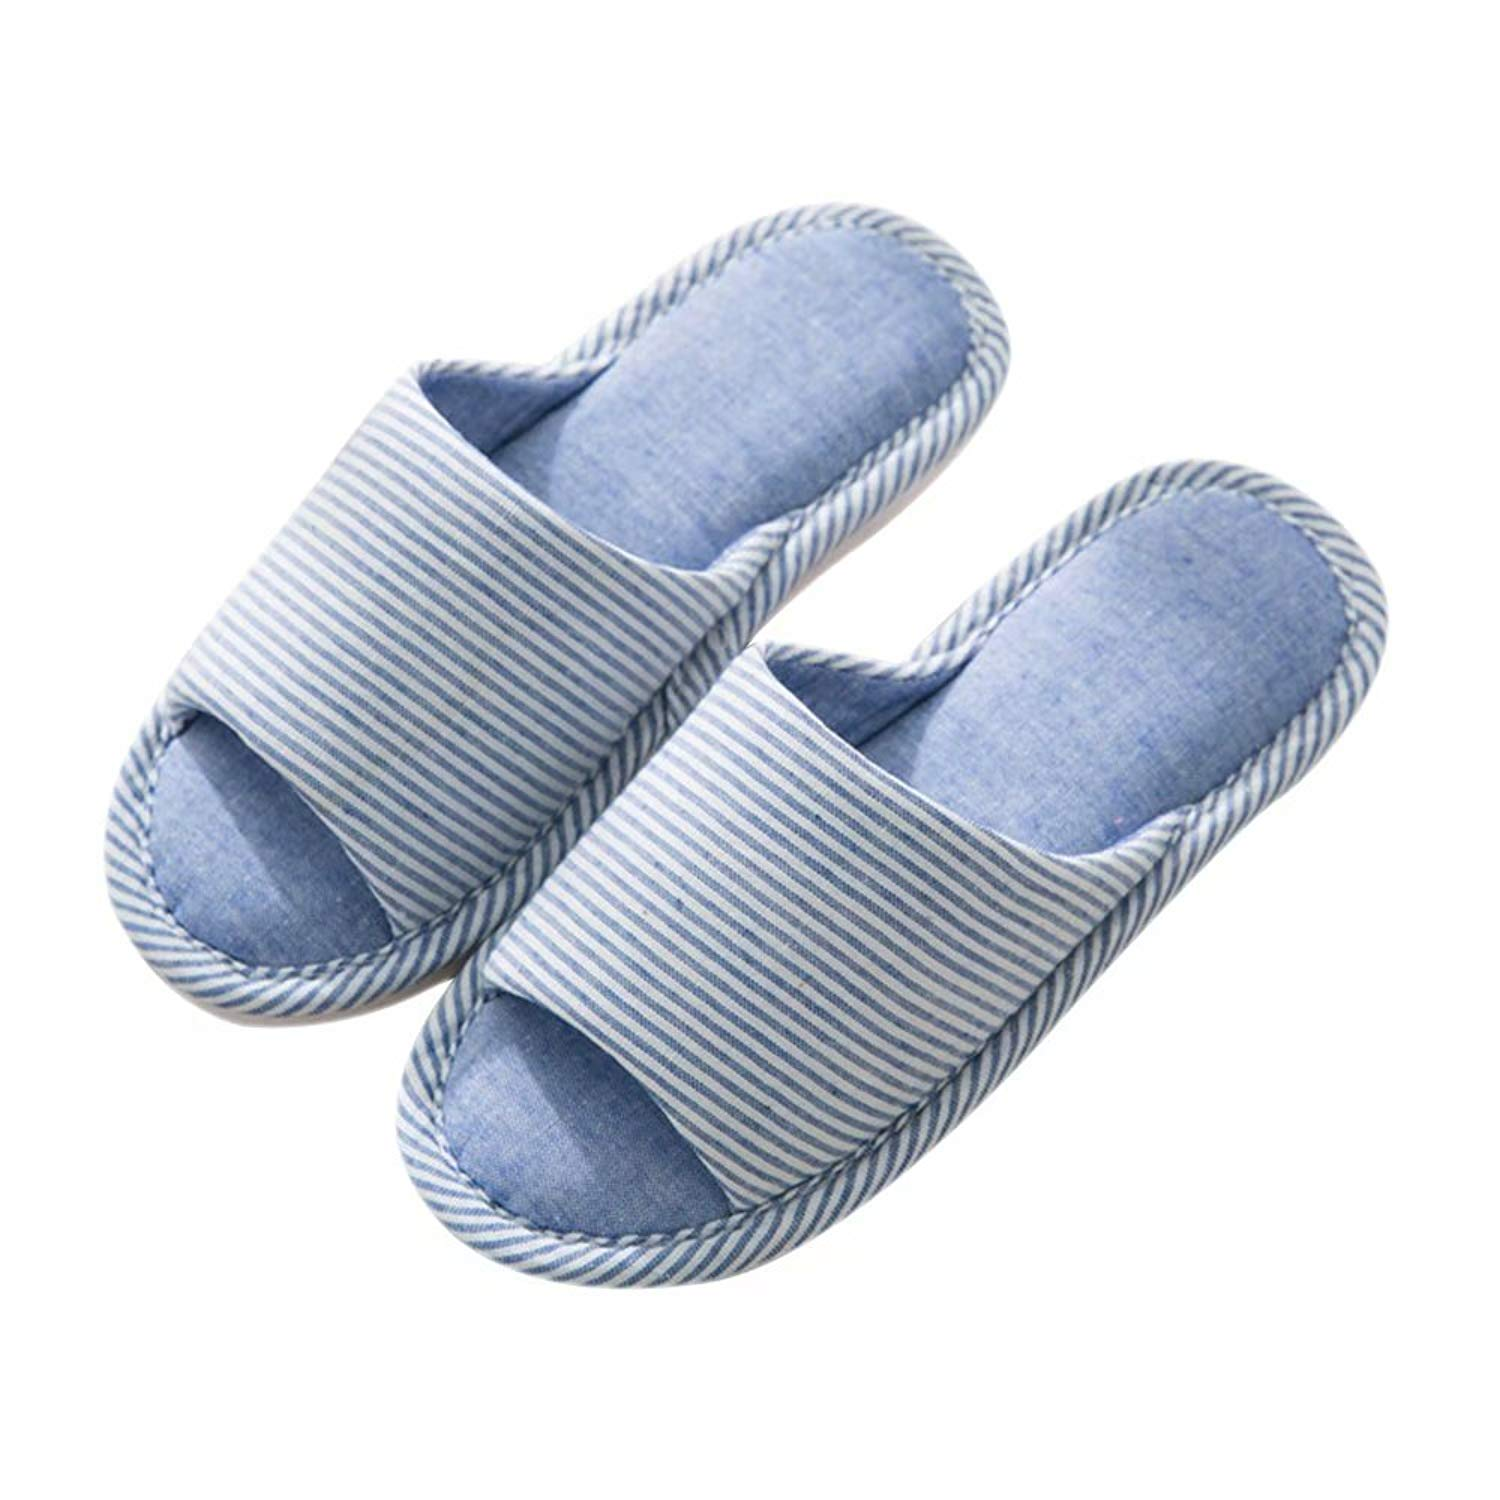 e179b118211ca9 Get Quotations · lulujinyu Unisex Memory Foam Cotton Washable Stripe  Slippers for Travel House Hotel Spa Bedroom